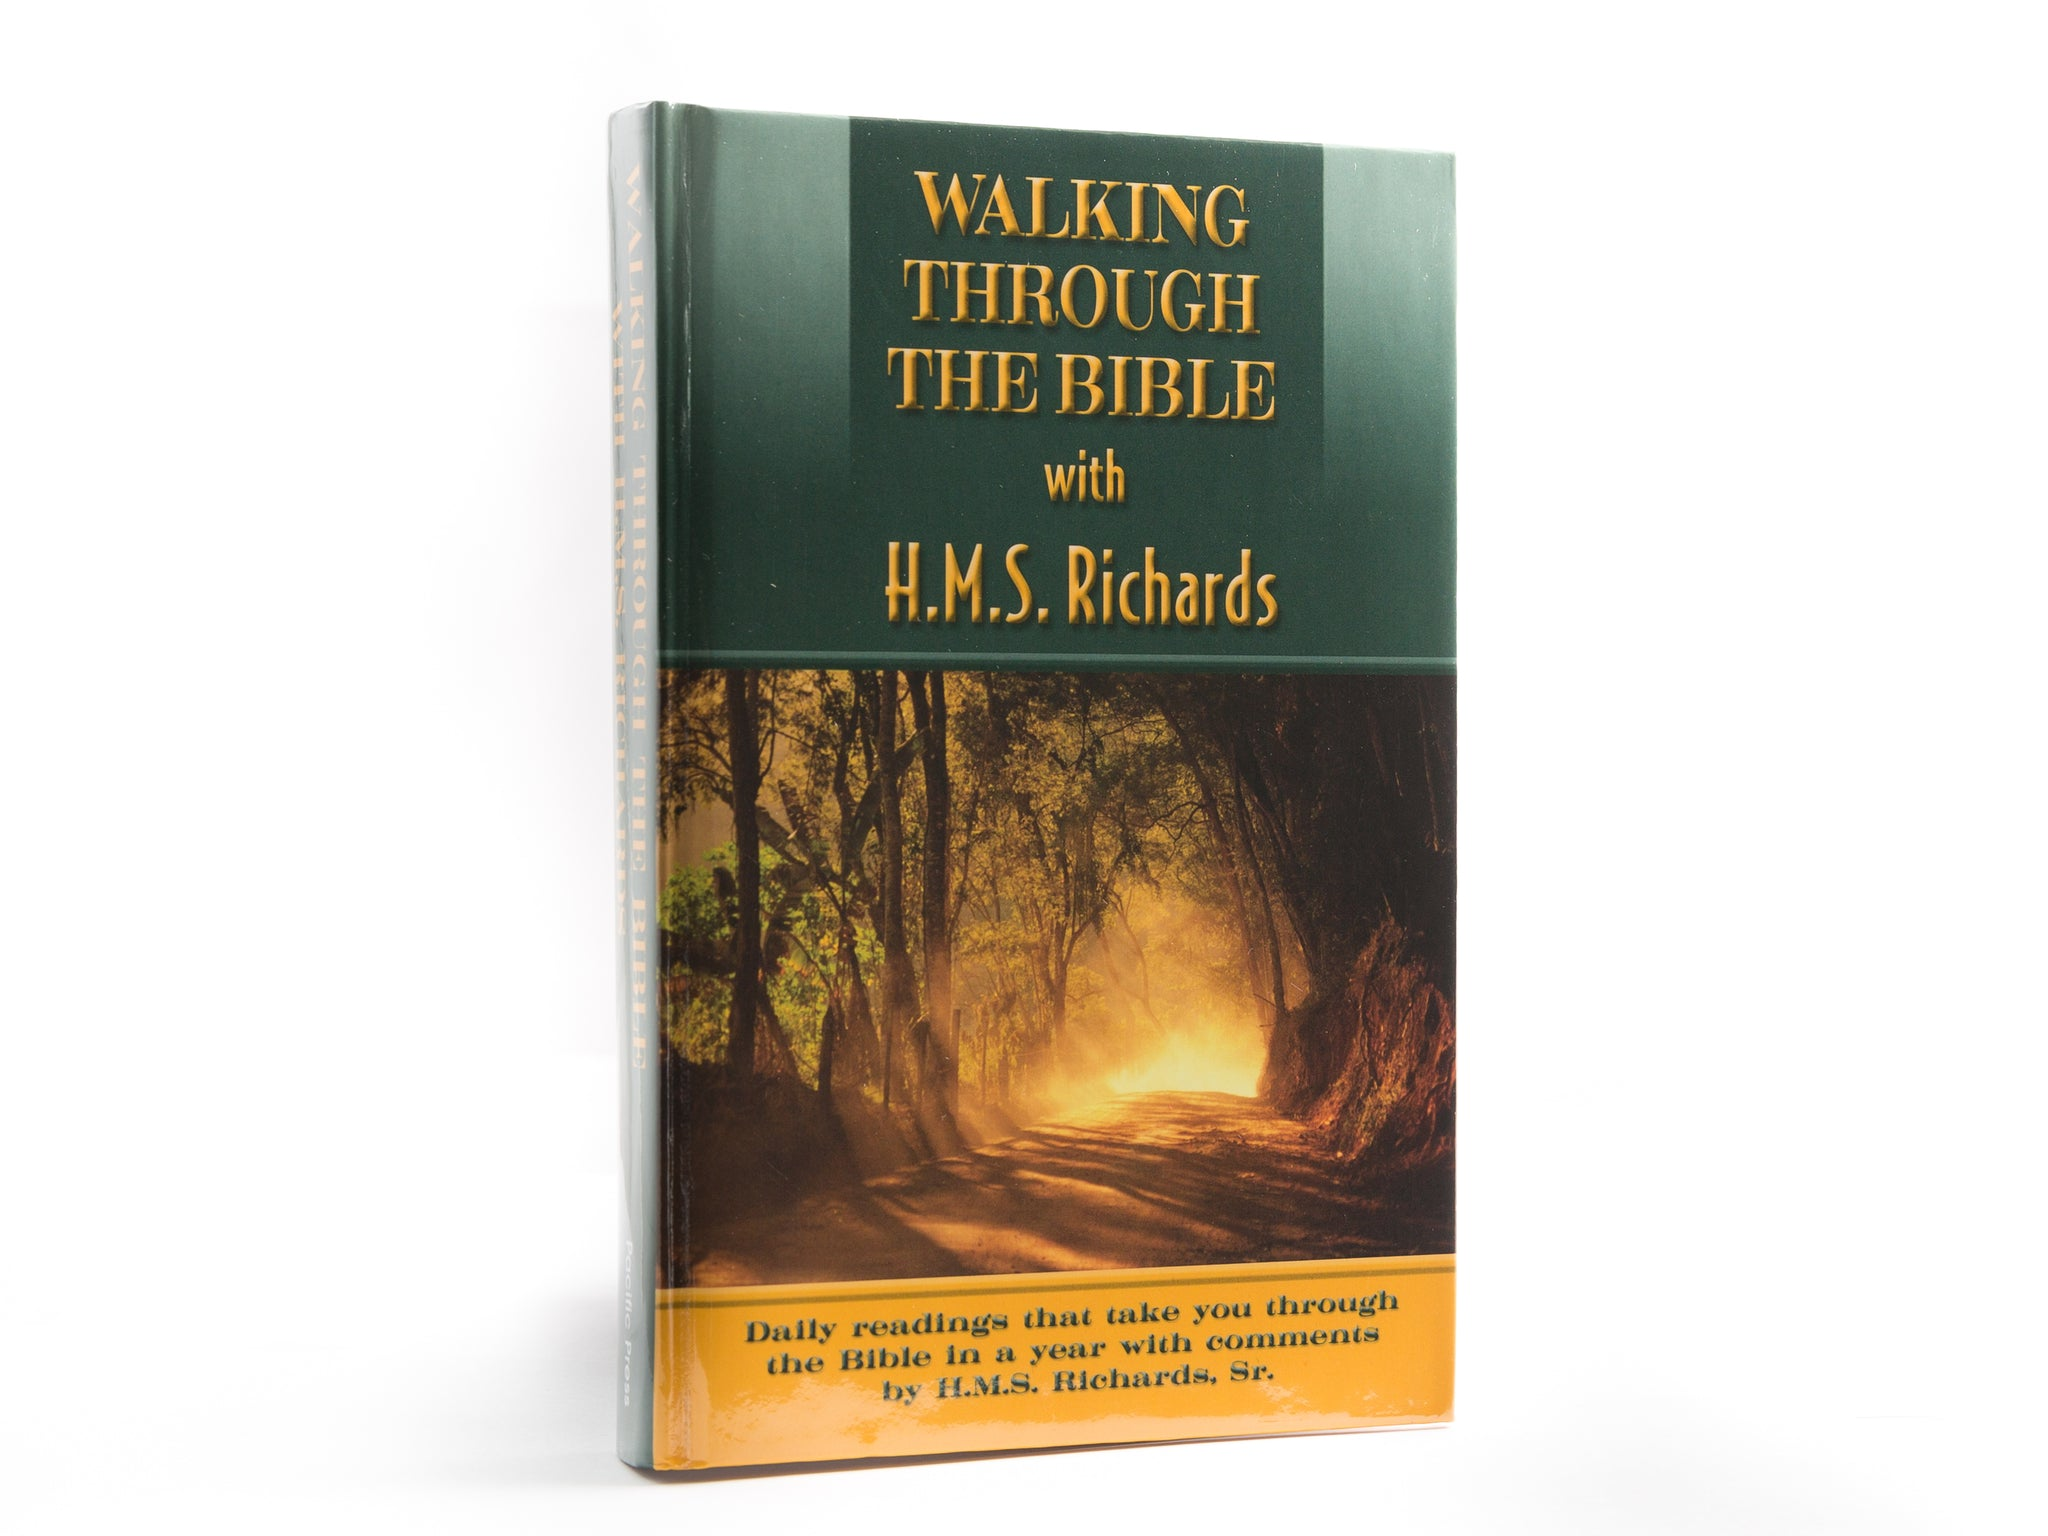 Walking Through the Bible With H. M. S. Richards - Book